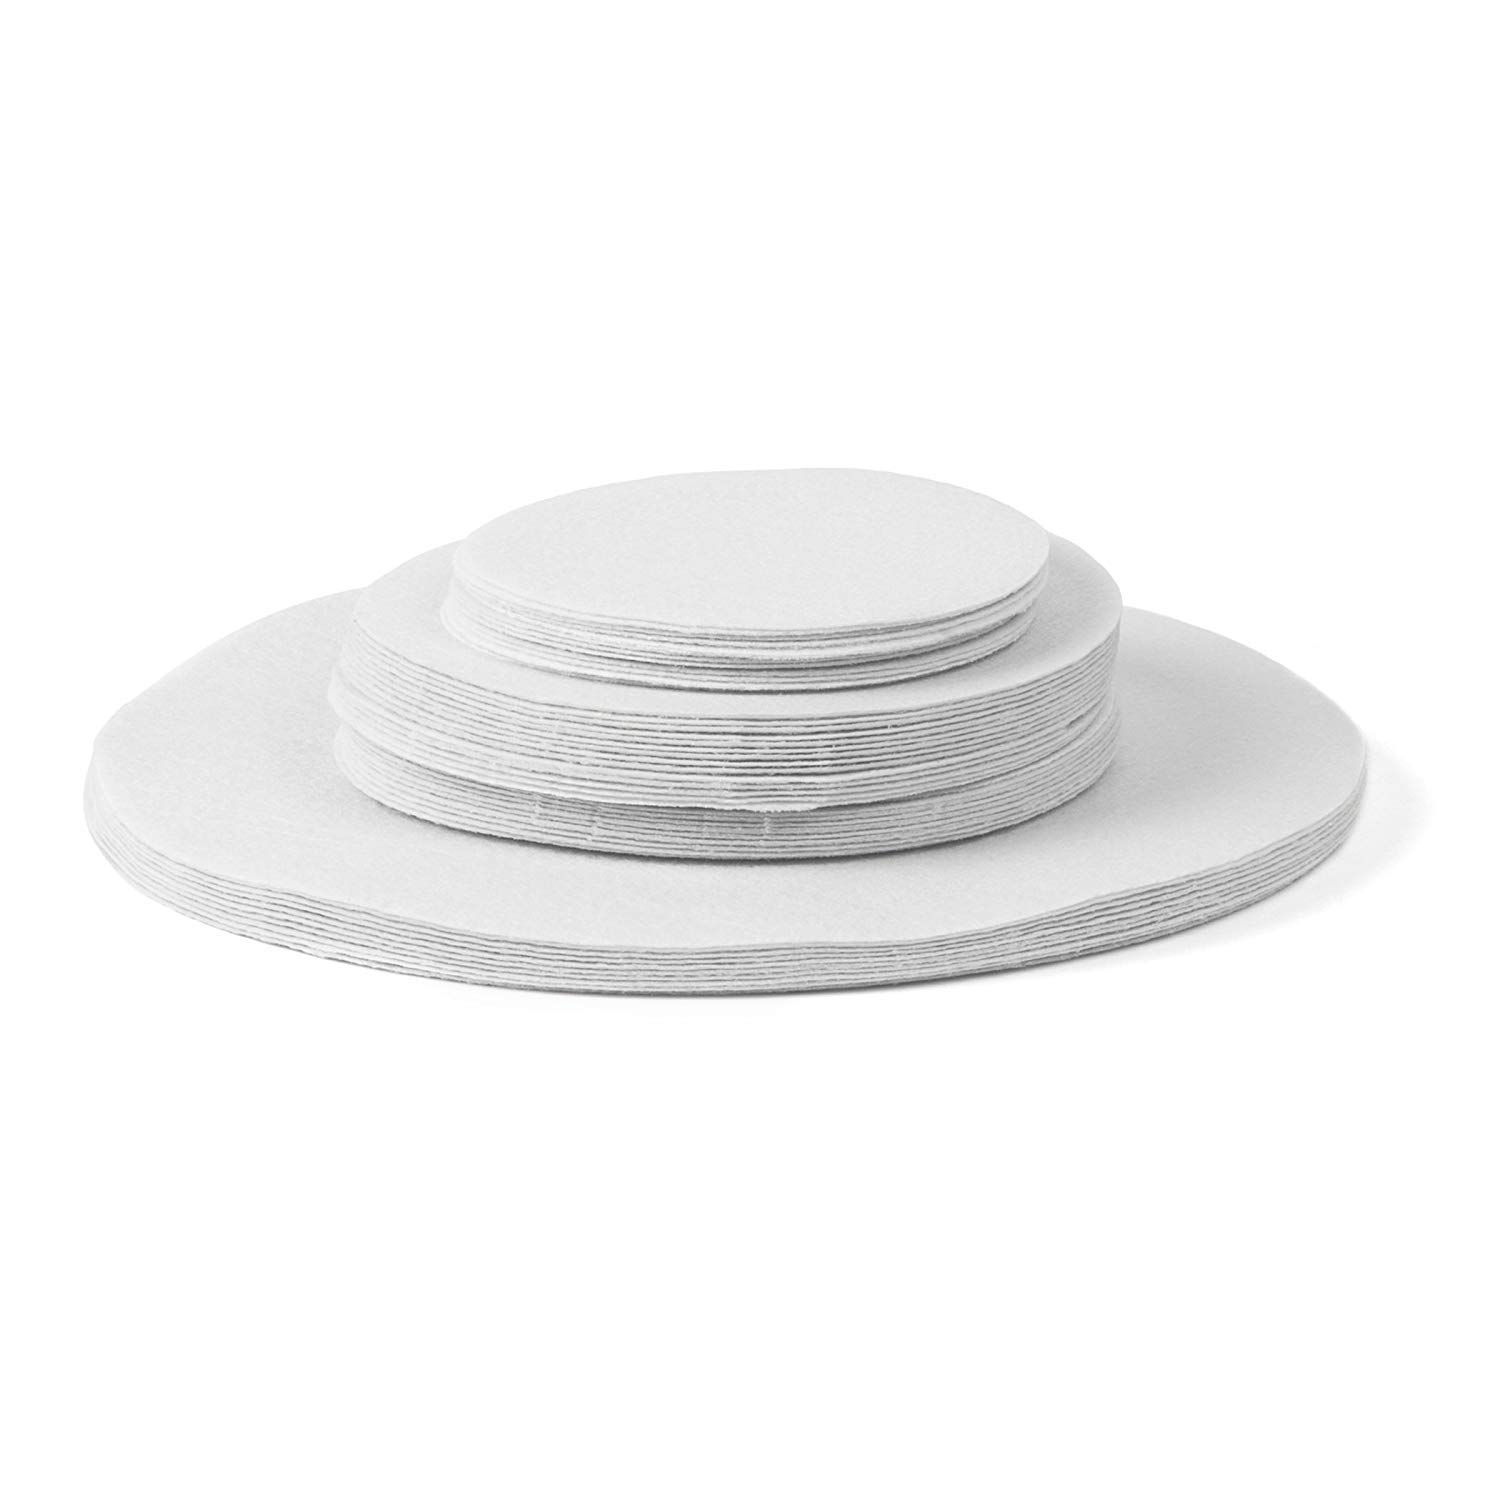 Soft White Felt Plate Dividers 12-10'', 24-6'', 12-4.5'' (Set of 48) by Richards Homewares